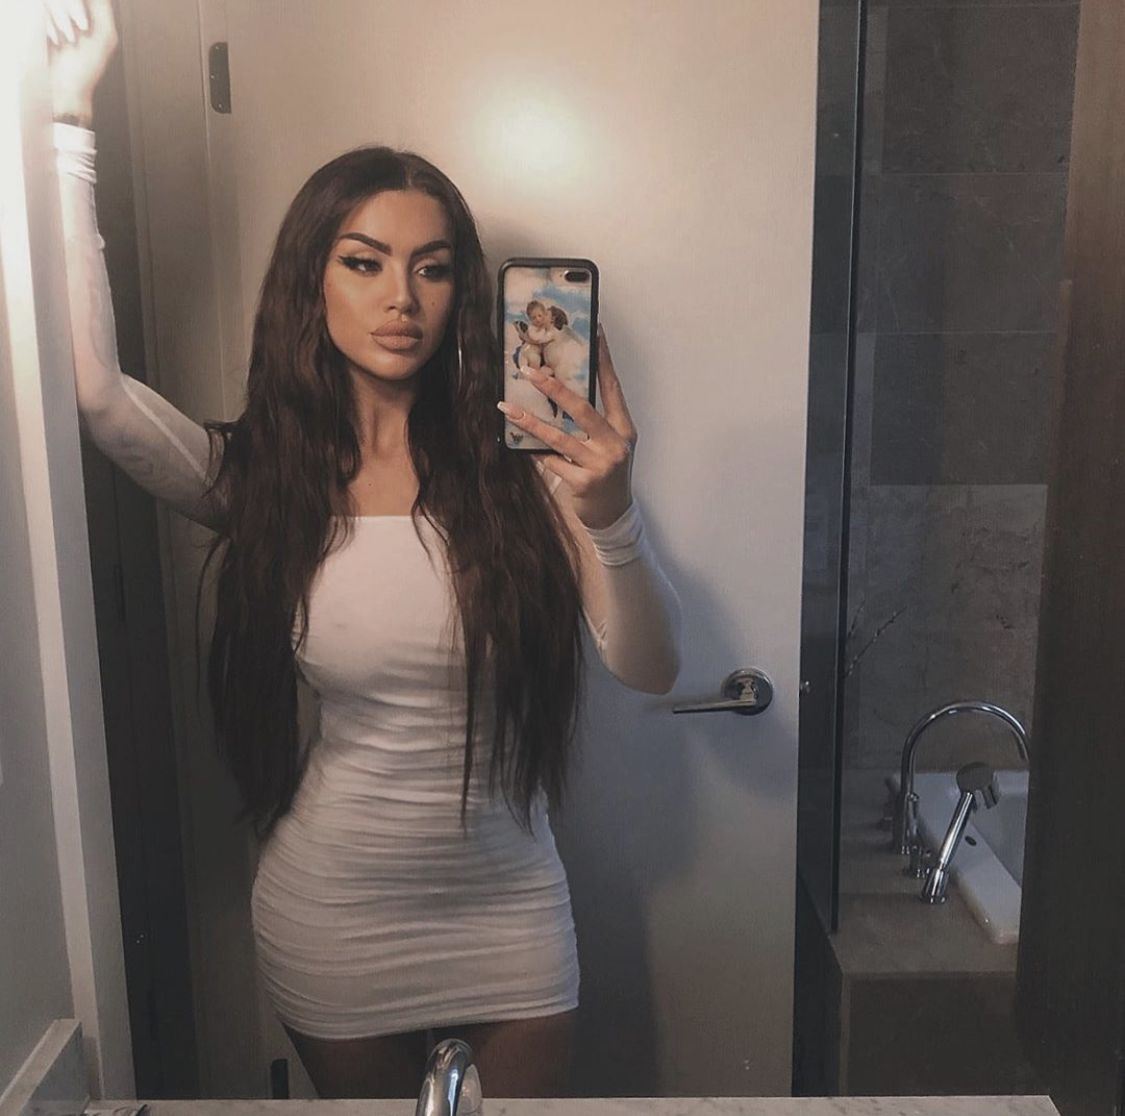 Hot girl in the mirror